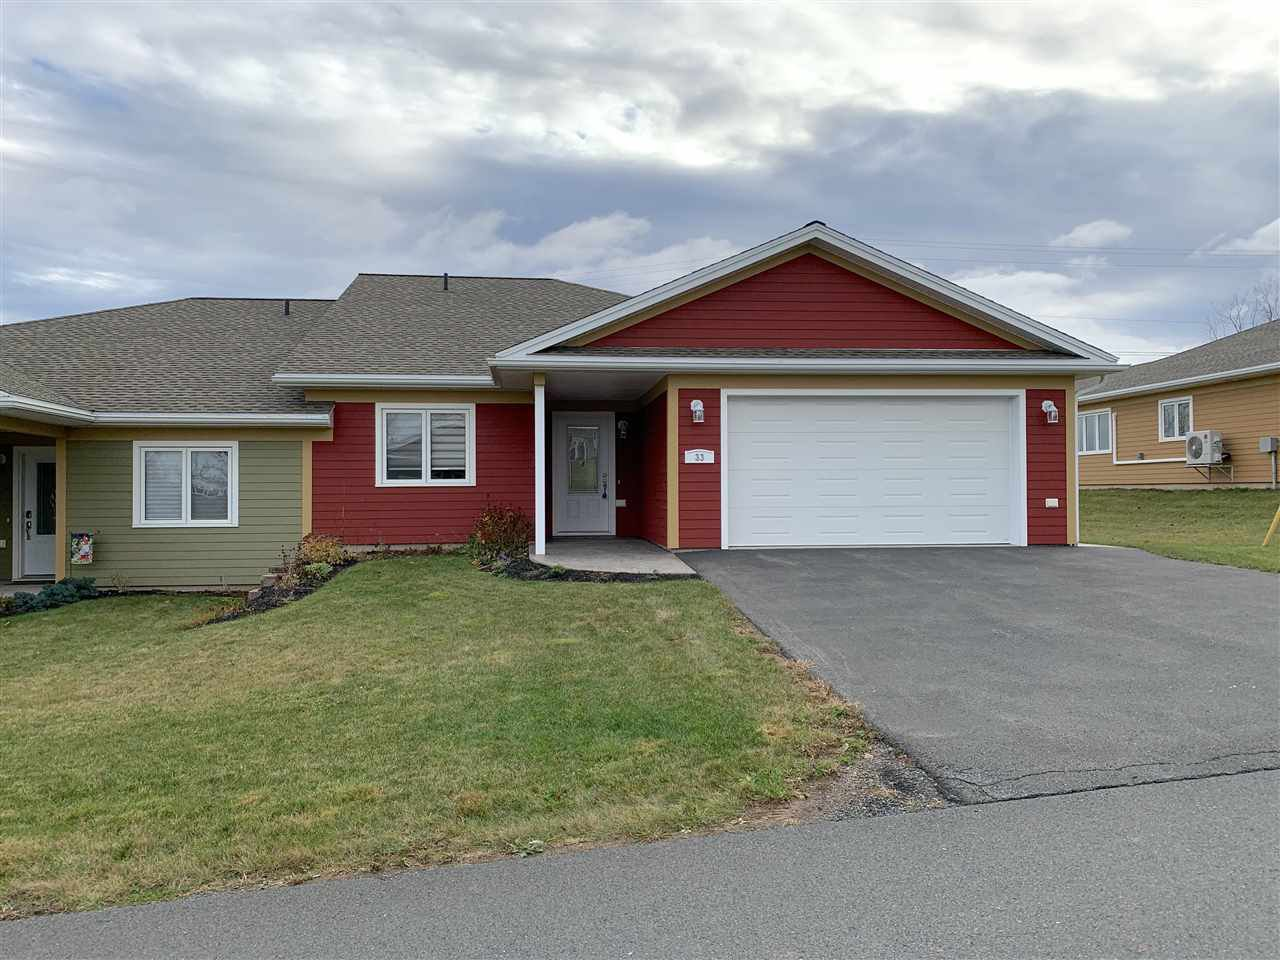 Main Photo: 33 Fairway Drive in Abercrombie: 108-Rural Pictou County Residential for sale (Northern Region)  : MLS®# 202023683